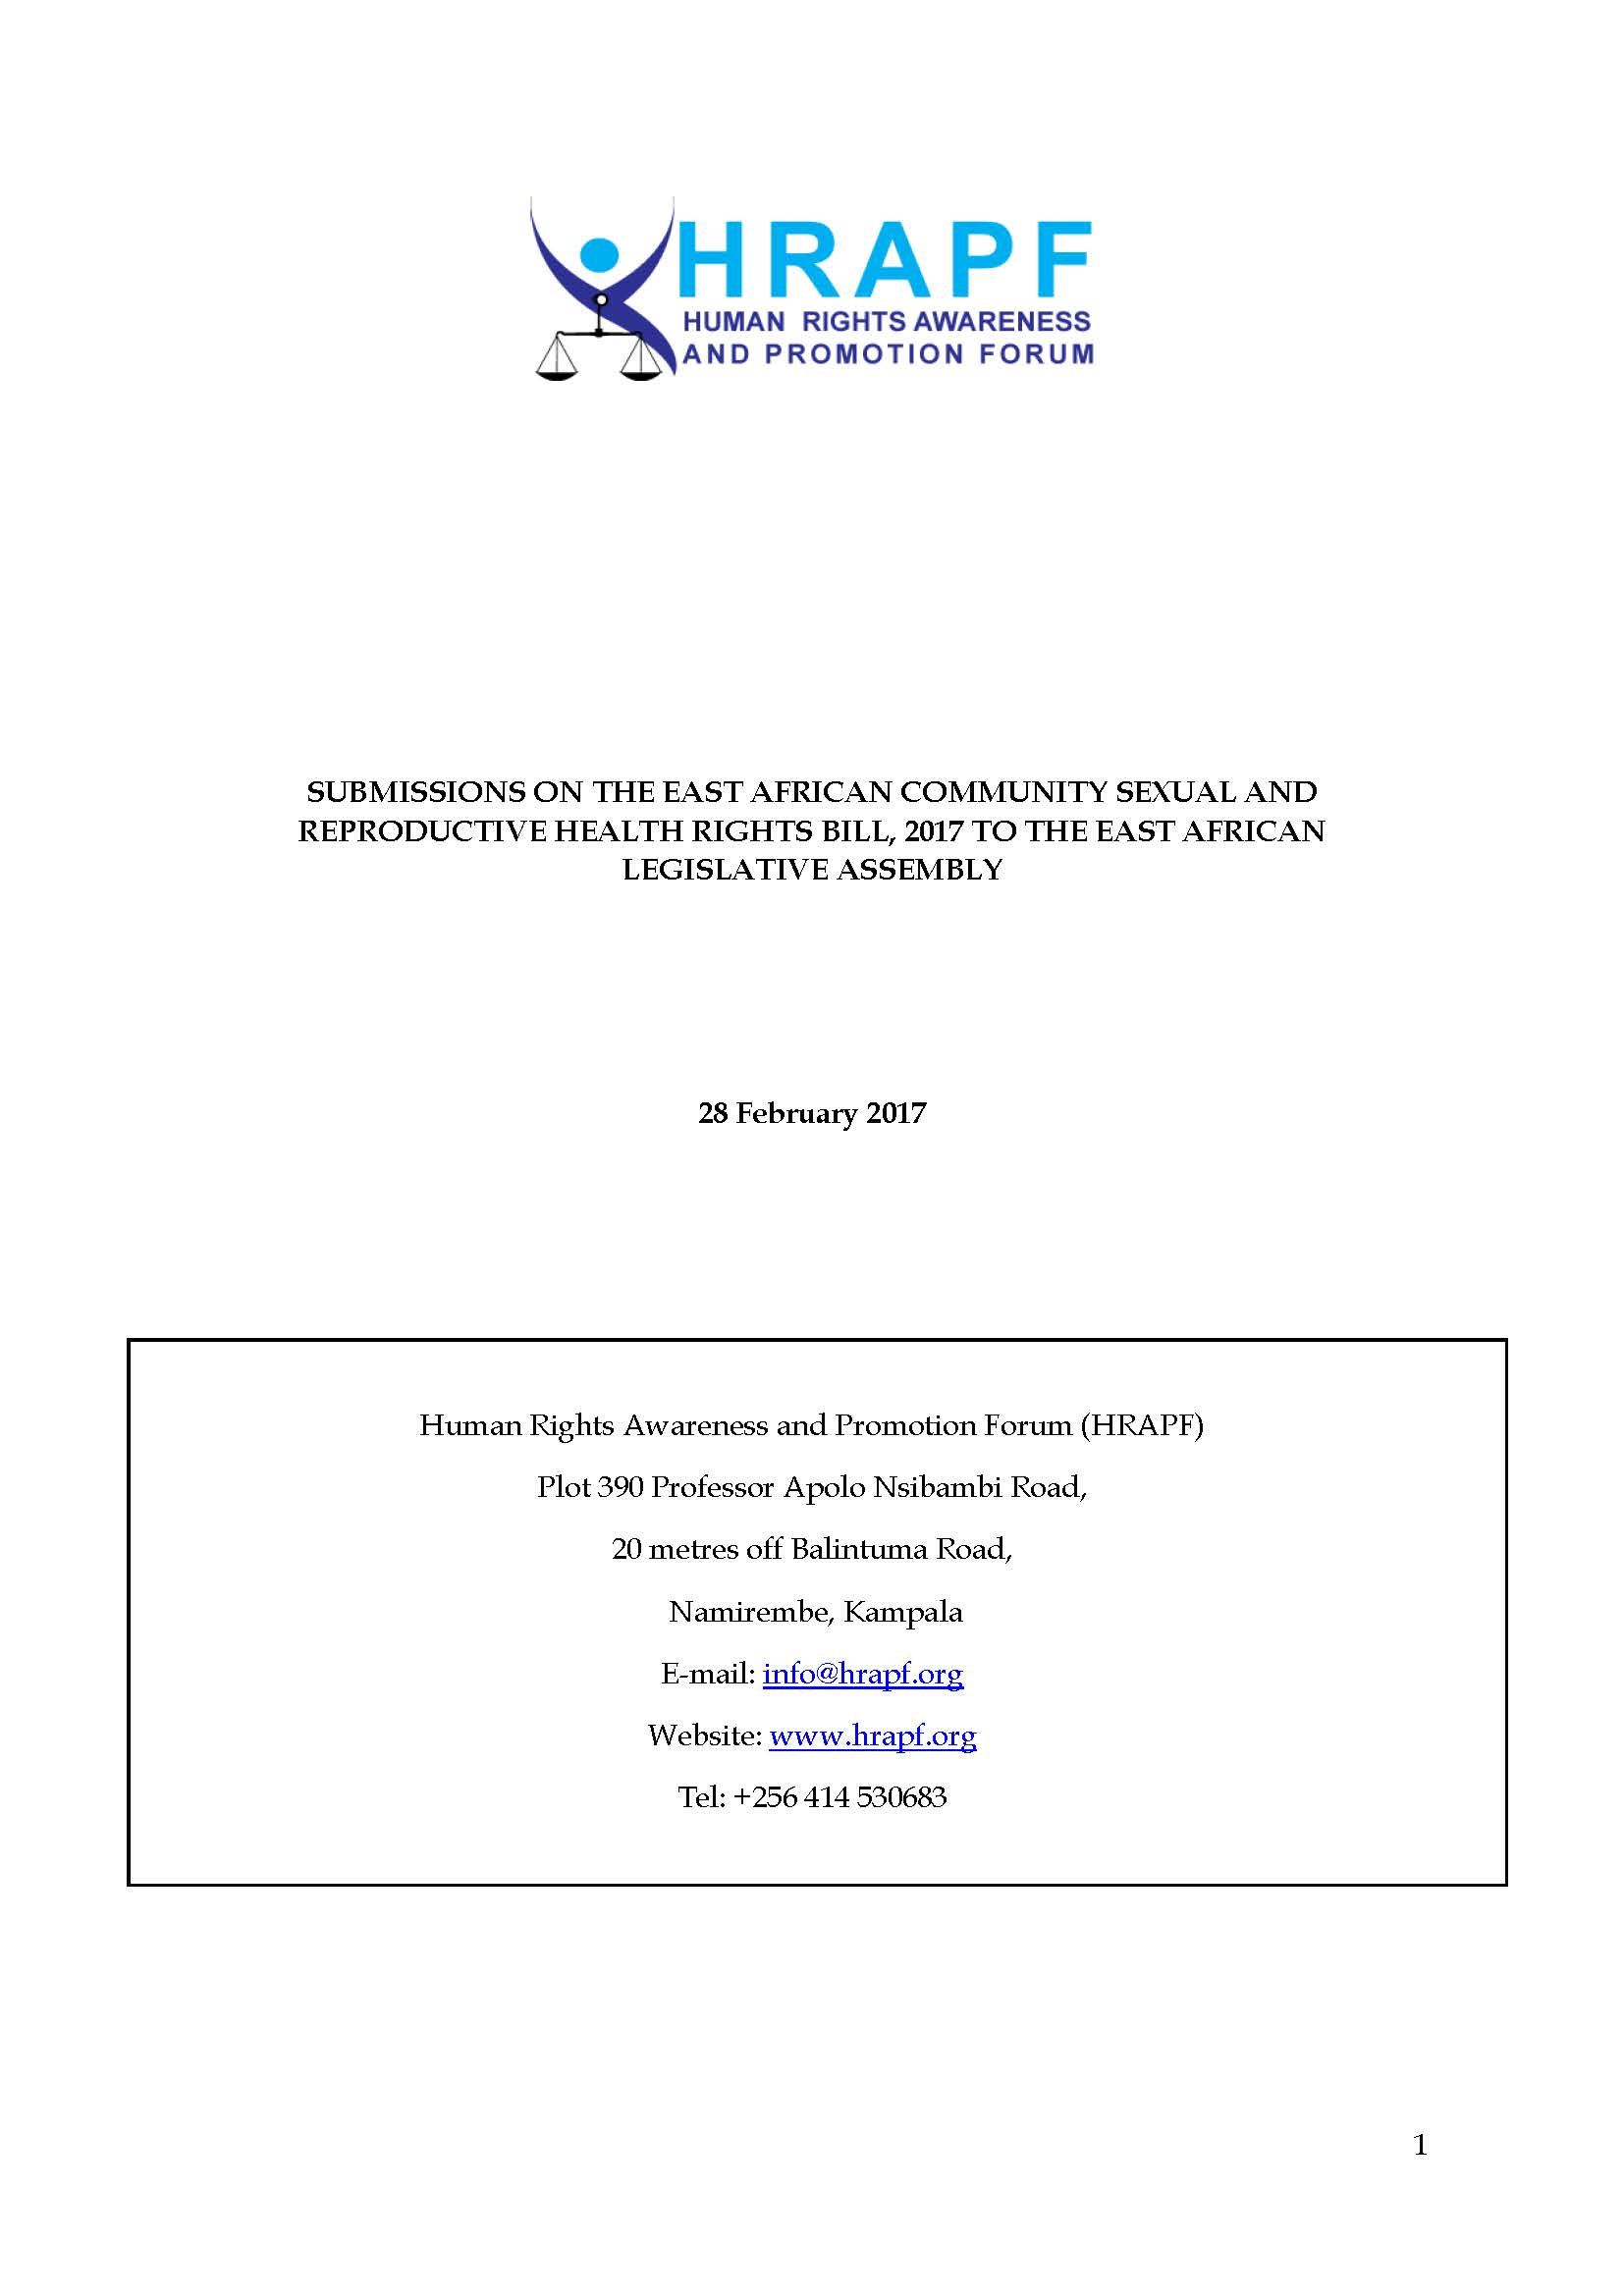 HRAPF Submissions on the EAC SRHR Bill